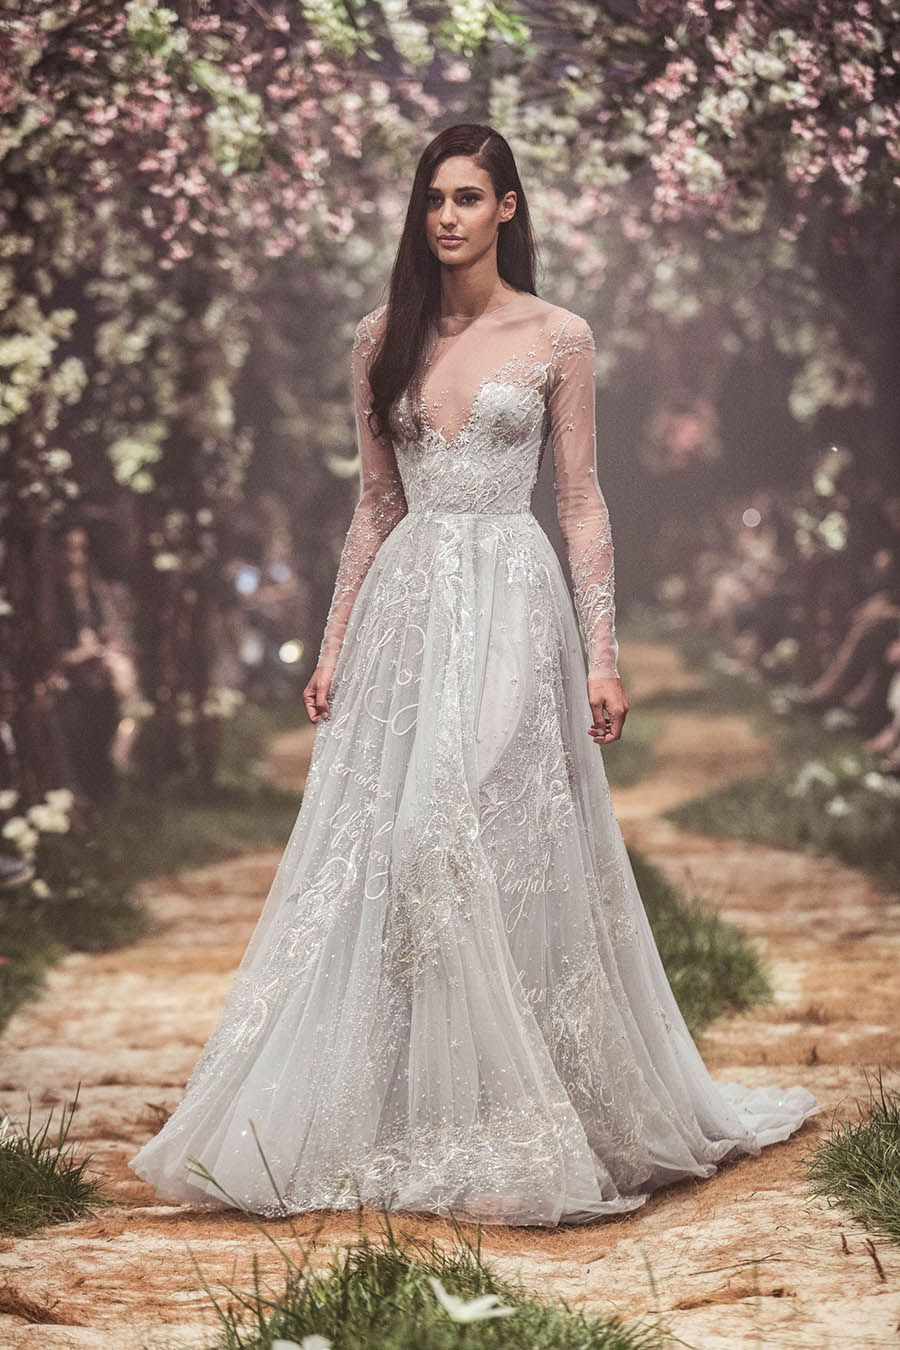 White Fairytale Paolo Sebastian Wedding Gown With Low Cut Neckline Illusion Long Sleeves And Sparkly Skirt Once Upon A Dream